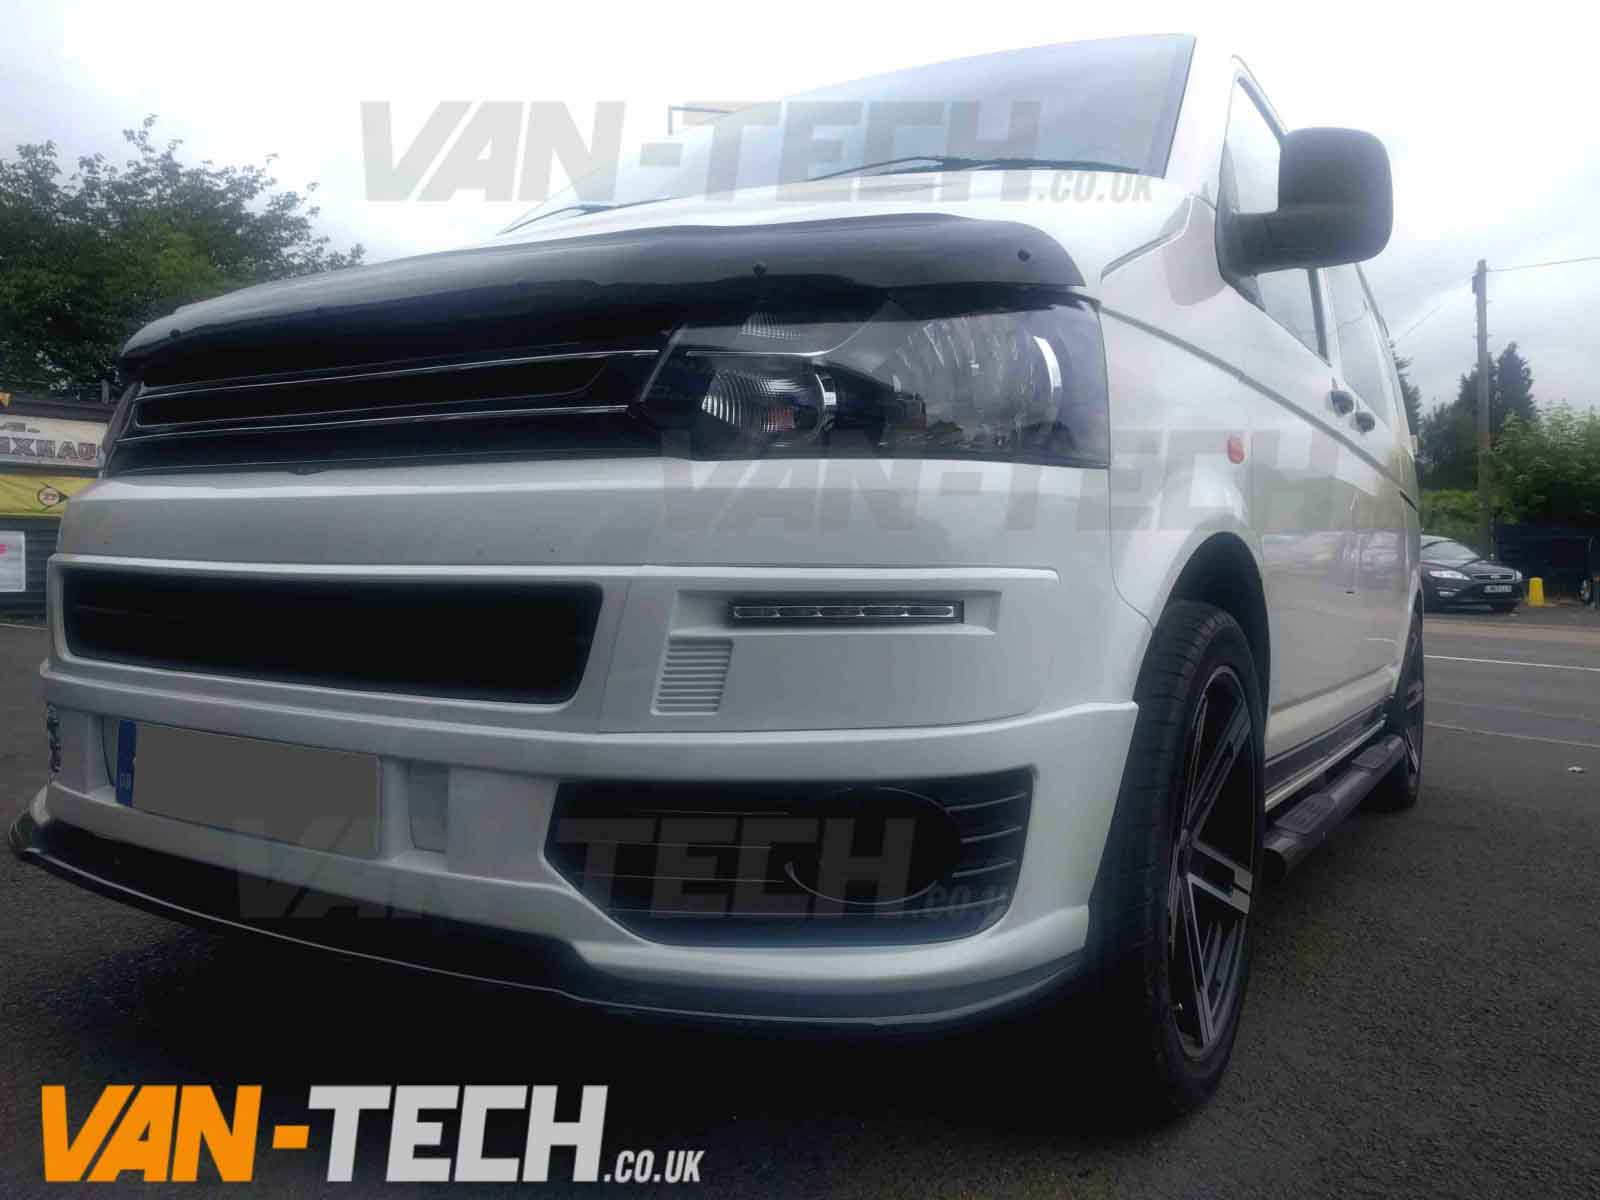 VW Transporter T5.1 Van 2010 - Front Lower Spoiler / Splitter | Van-Tech